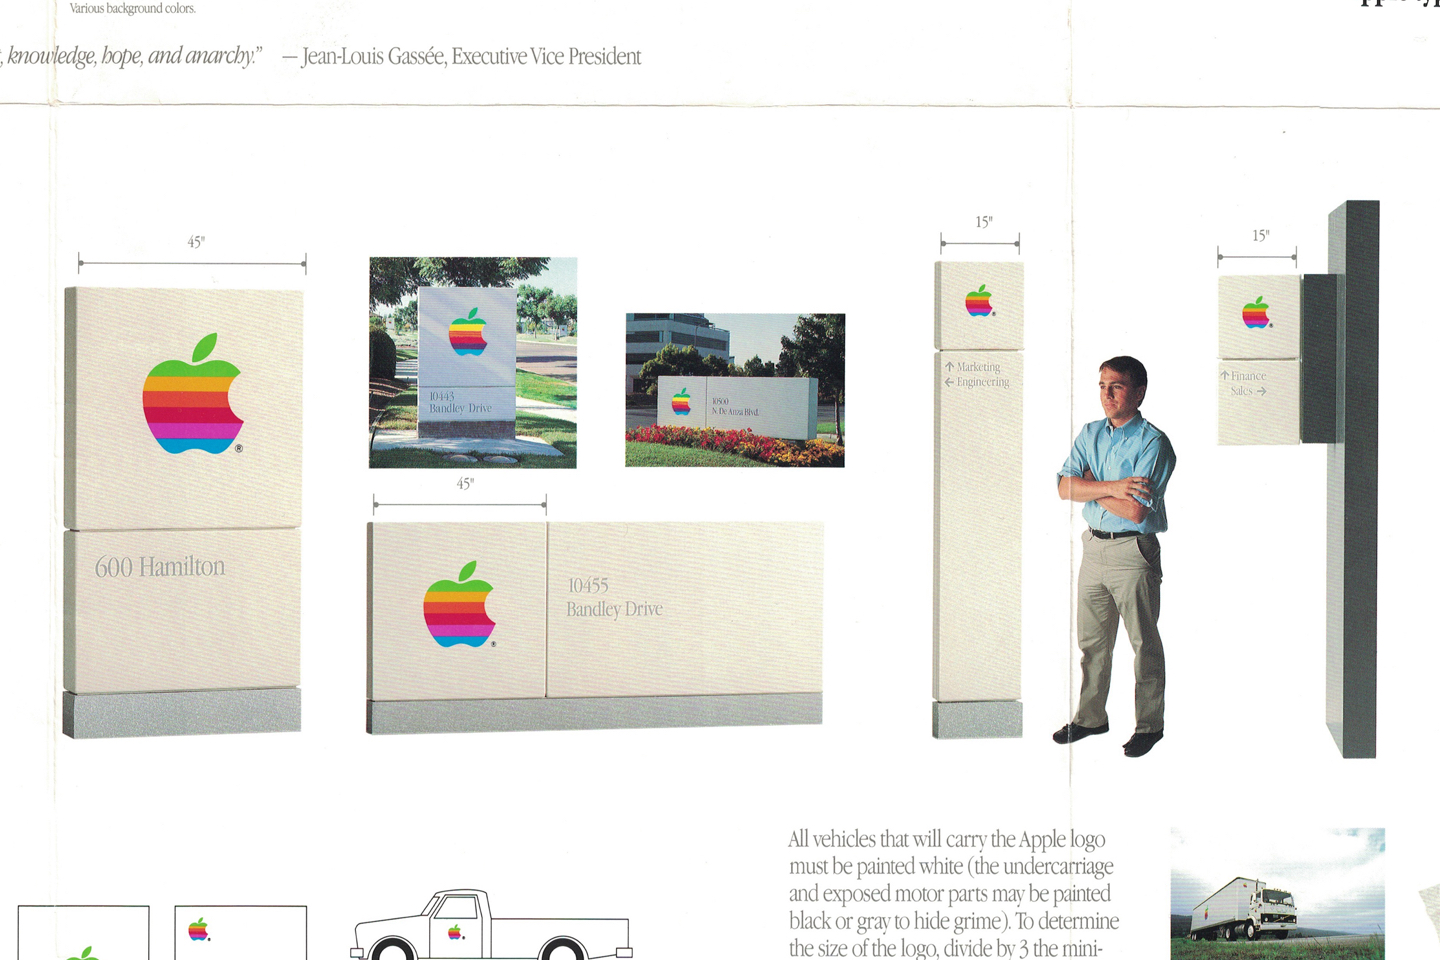 A visual identity system for the Apple logo featuring signage of various sizes.